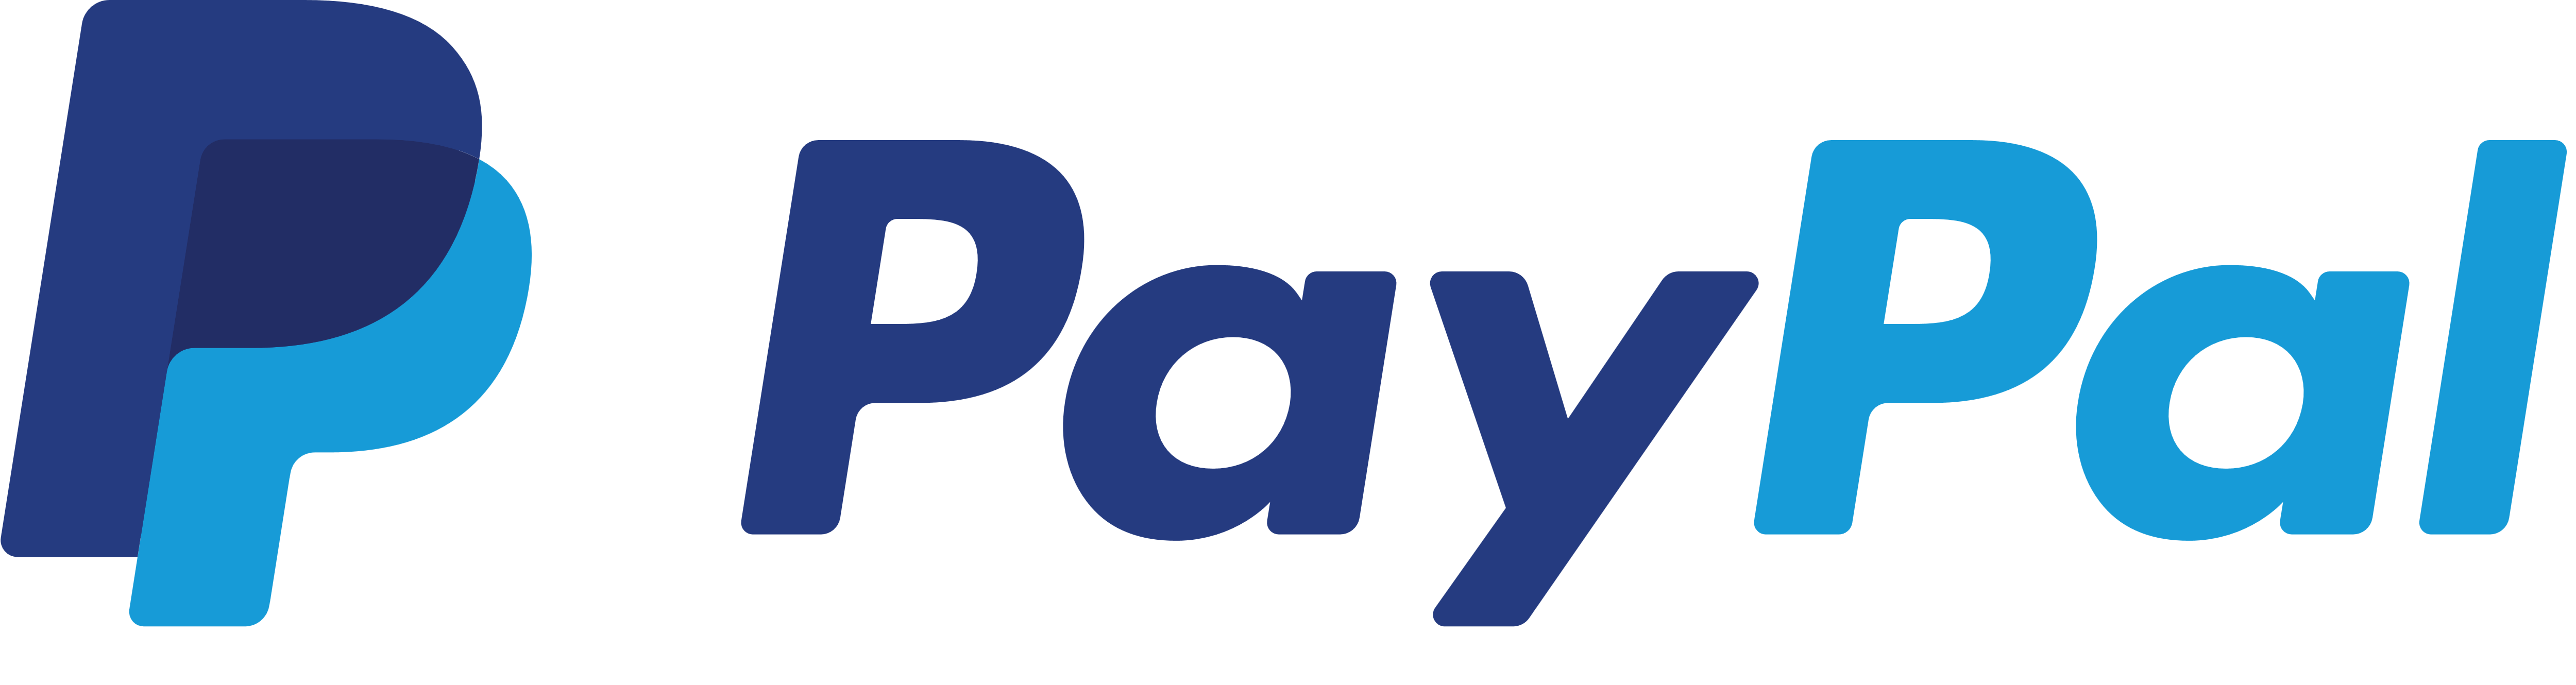 An image of the PayPal logo